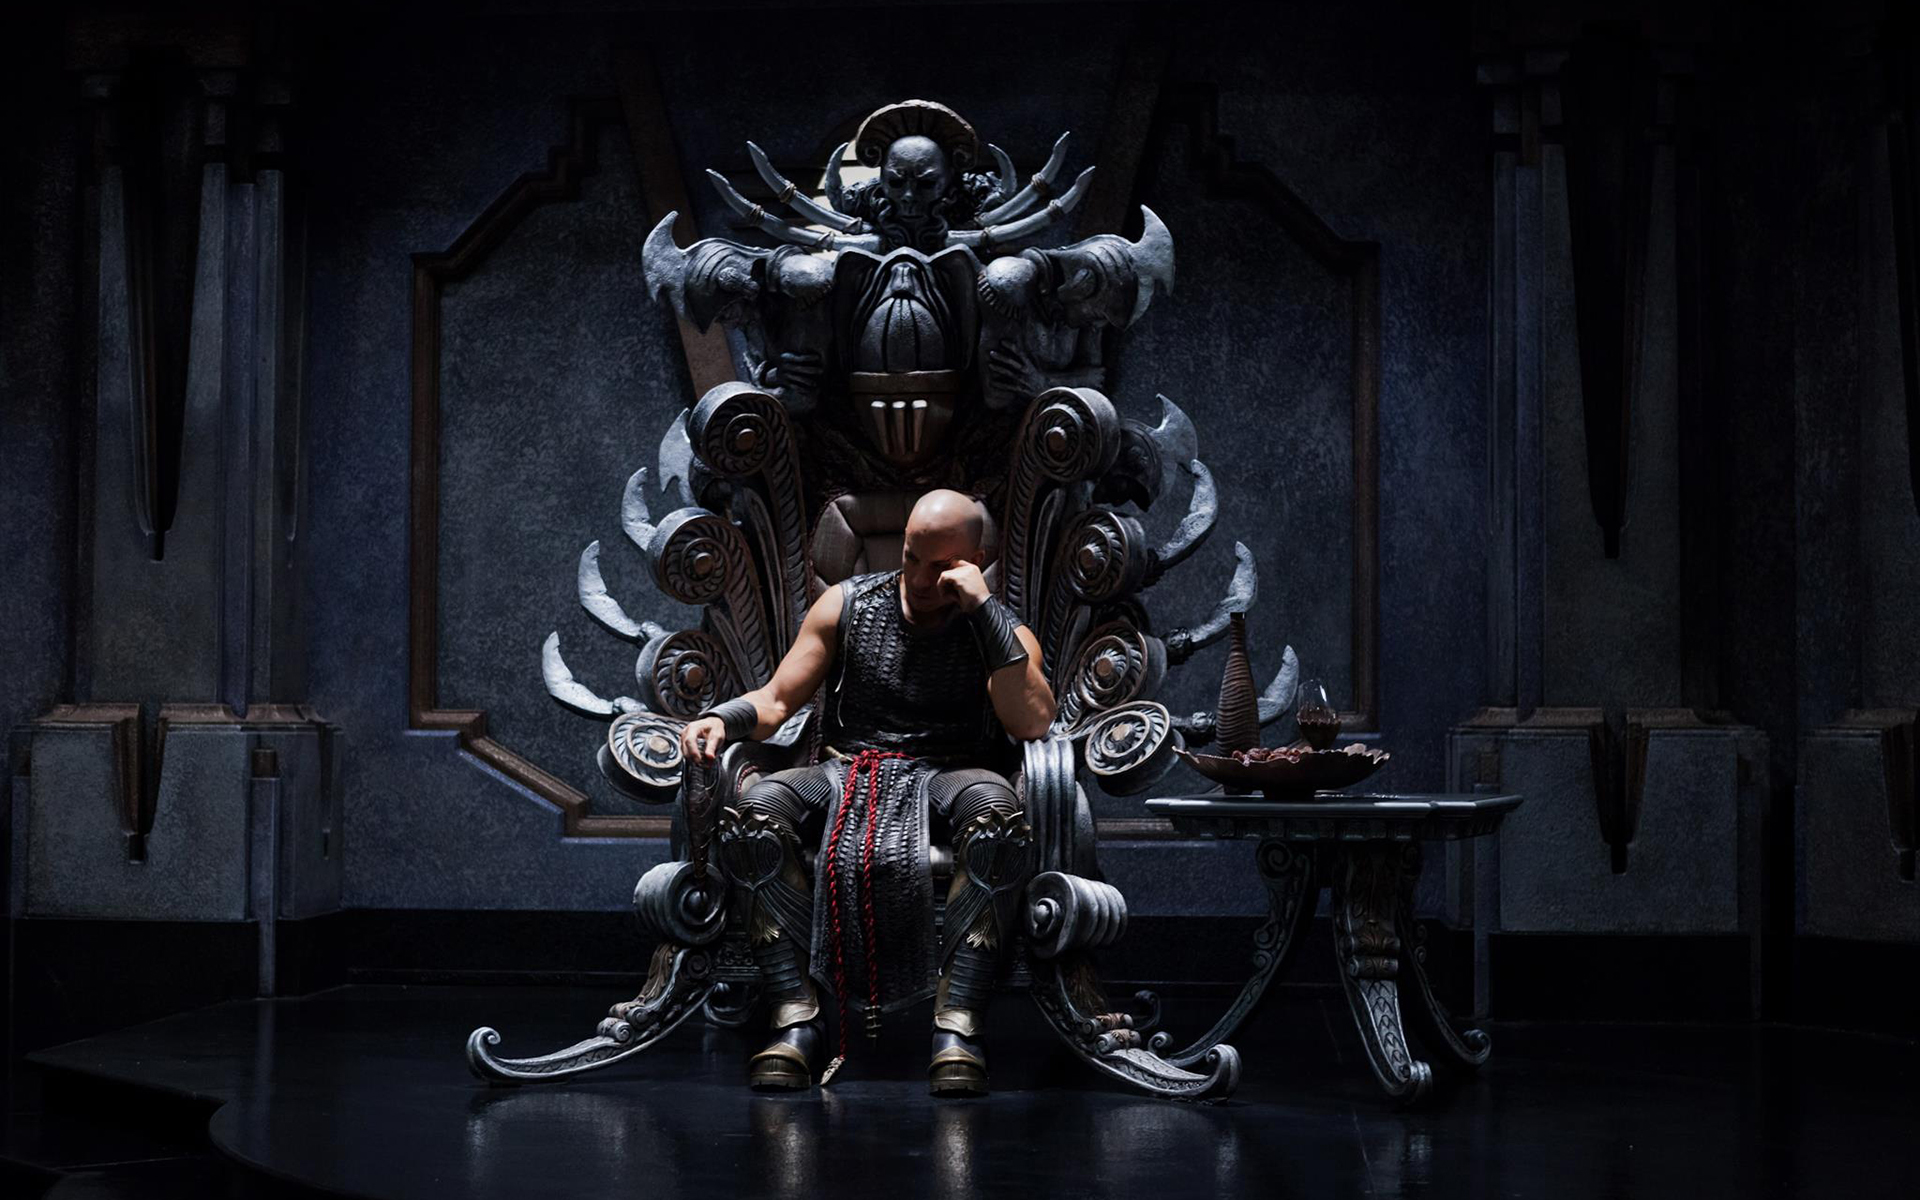 iron throne chair cover most ergonomic vin diesel riddick wallpaper 1920x1200 46436